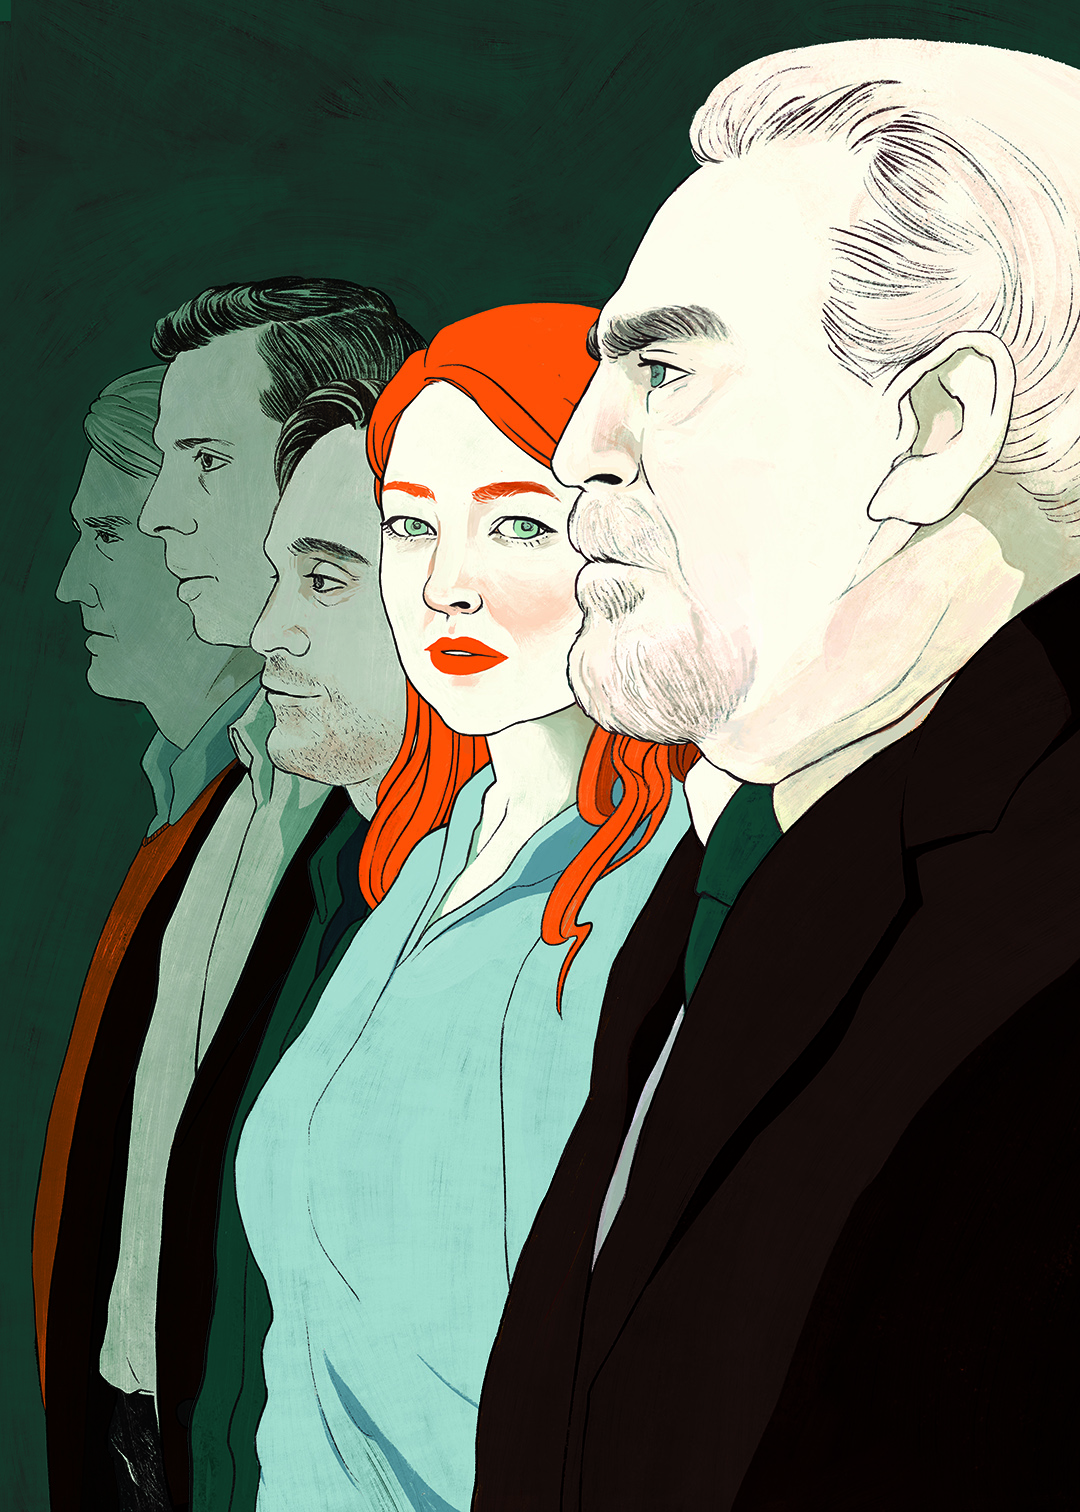 "THE NEW YORKER, <a href=""https://www.newyorker.com/magazine/2018/09/03/successions-satisfyingly-nasty-family-ties""><i>Succession</i>'s Satisfyingly Nasty Family Ties</a>"